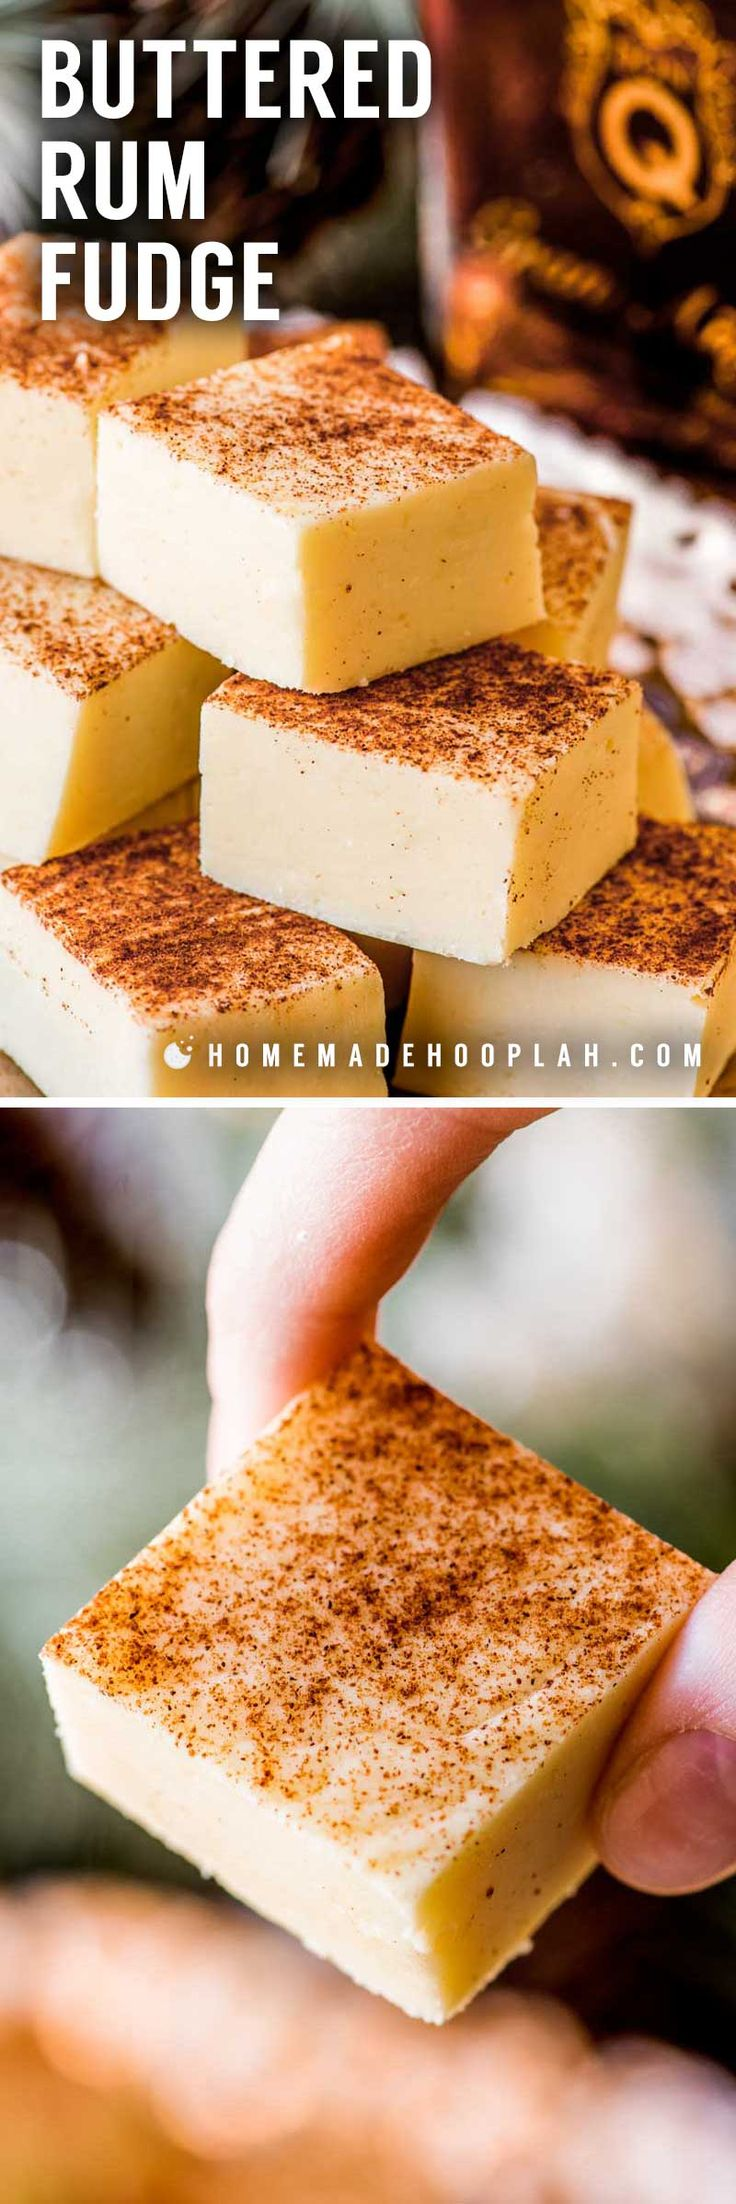 Buttered Rum Fudge! This white chocolate fudge is flavored with Don QGran Añejo, giving this rum fudge a taste of a classic hot buttered rum. Perfect for gifting! | #ad #Exceptional #DonQRum HomemadeHooplah.com